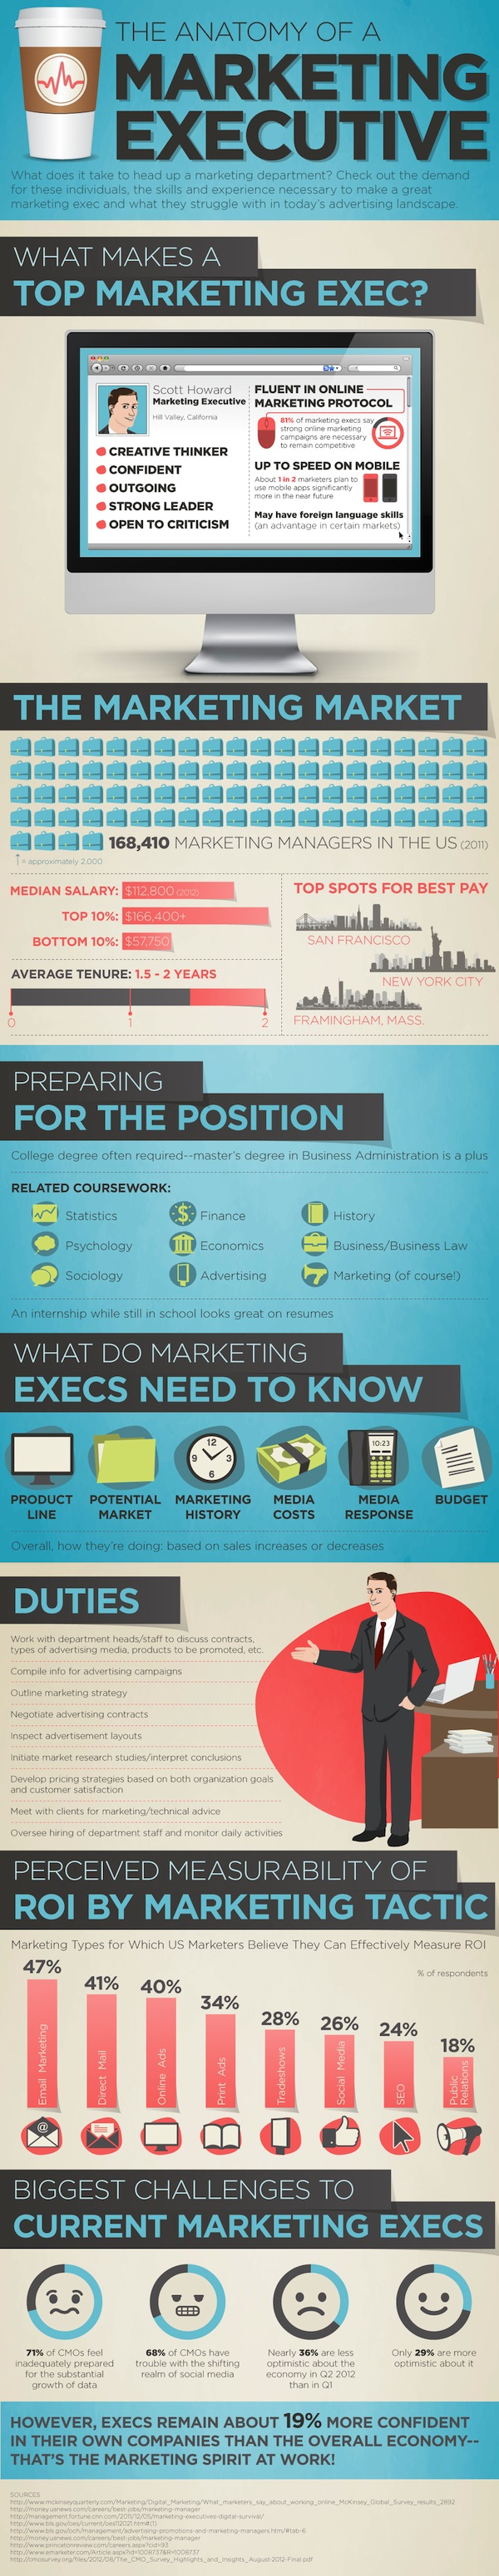 Marketing Executive Qualities-Infographic